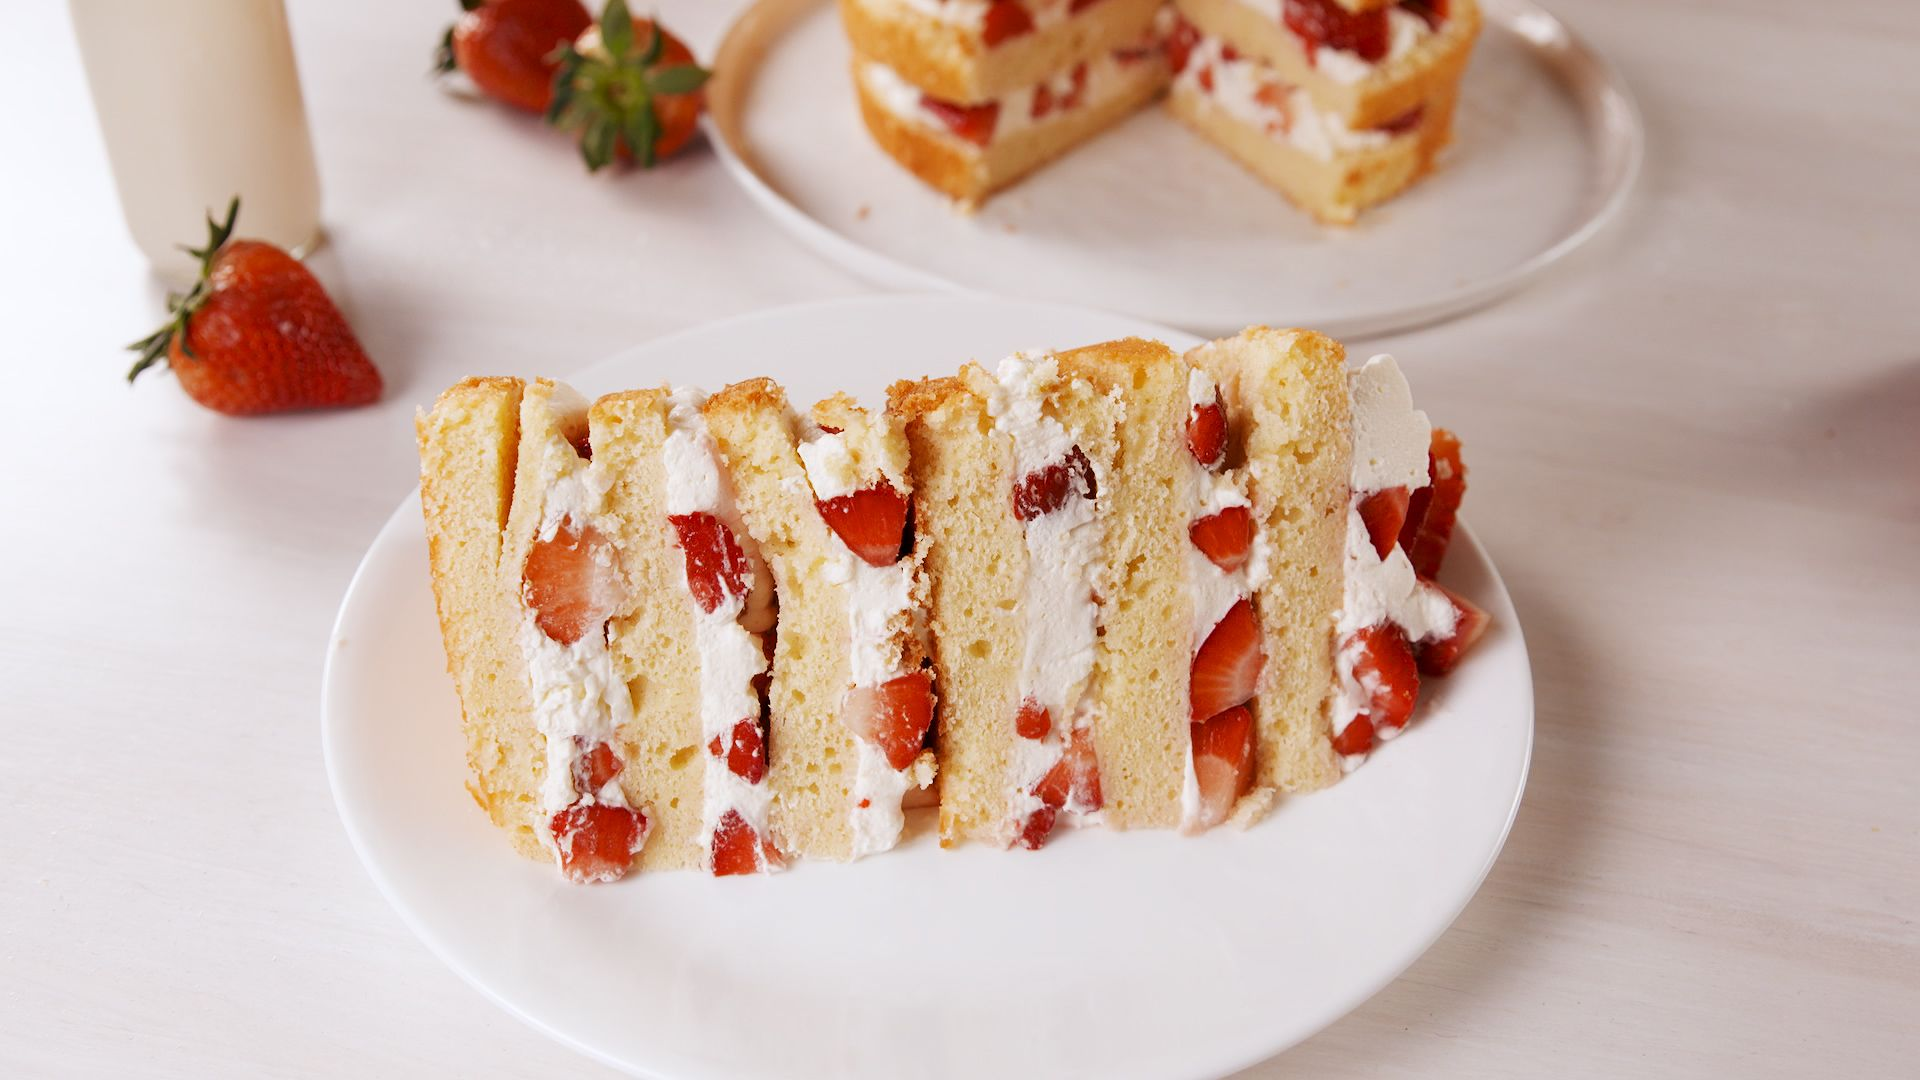 Best Strawberry Shortcake Tower Recipe How To Make Strawberry Shortcake Tower